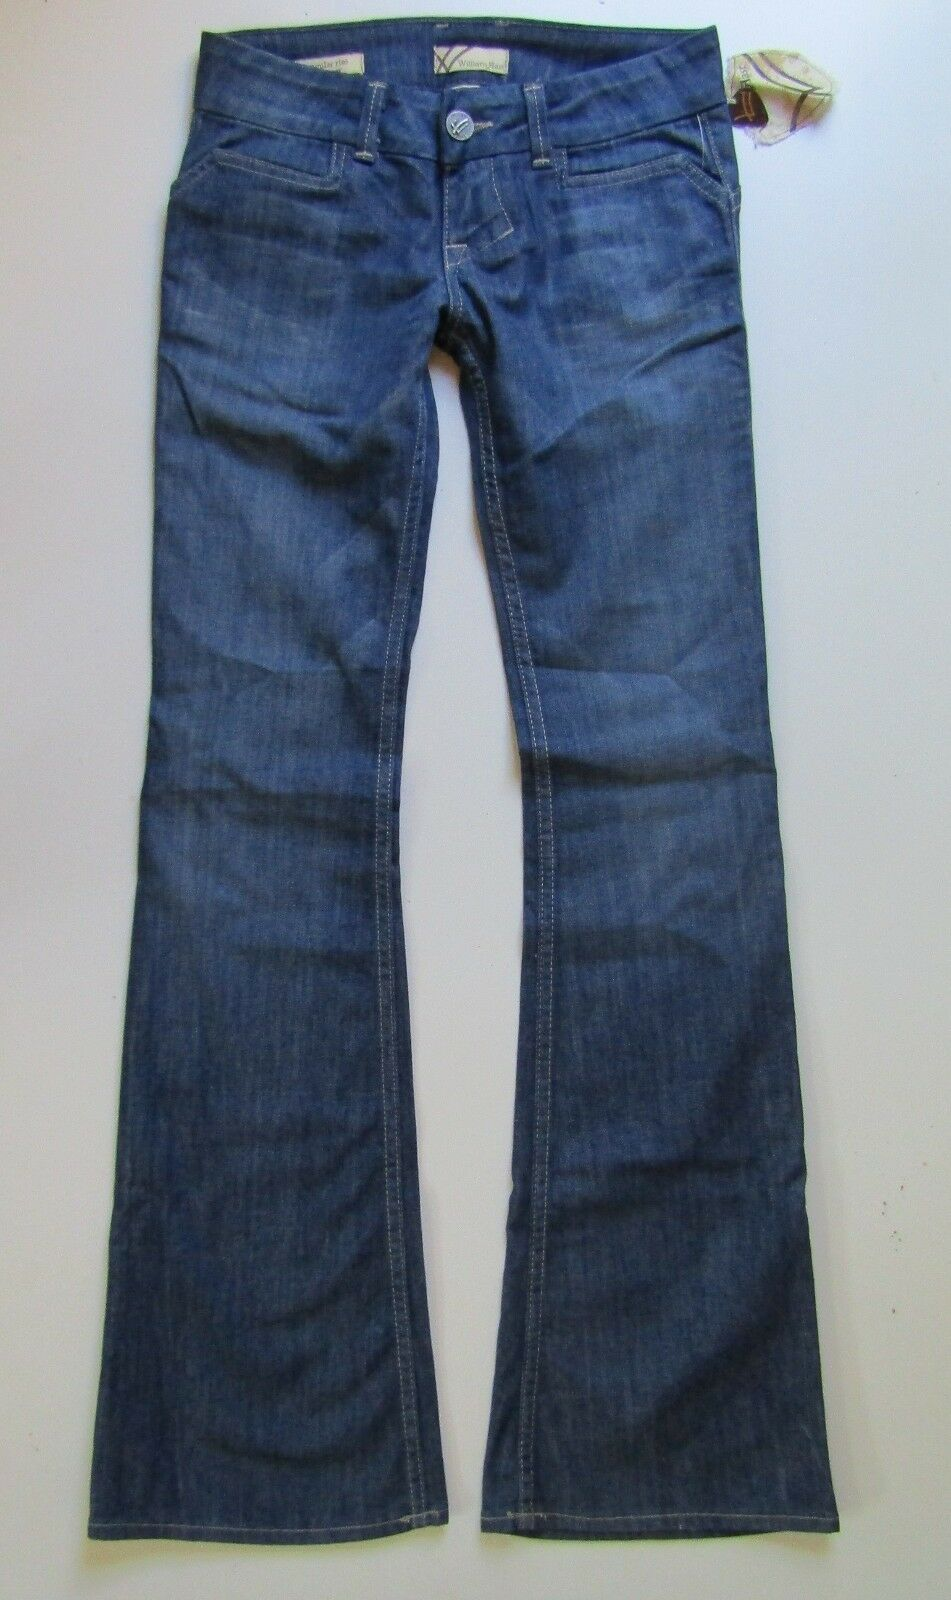 NWT William Rast Savoy Trouser Low Rise Flare Jean in Tranzanite - Size 24 x 34